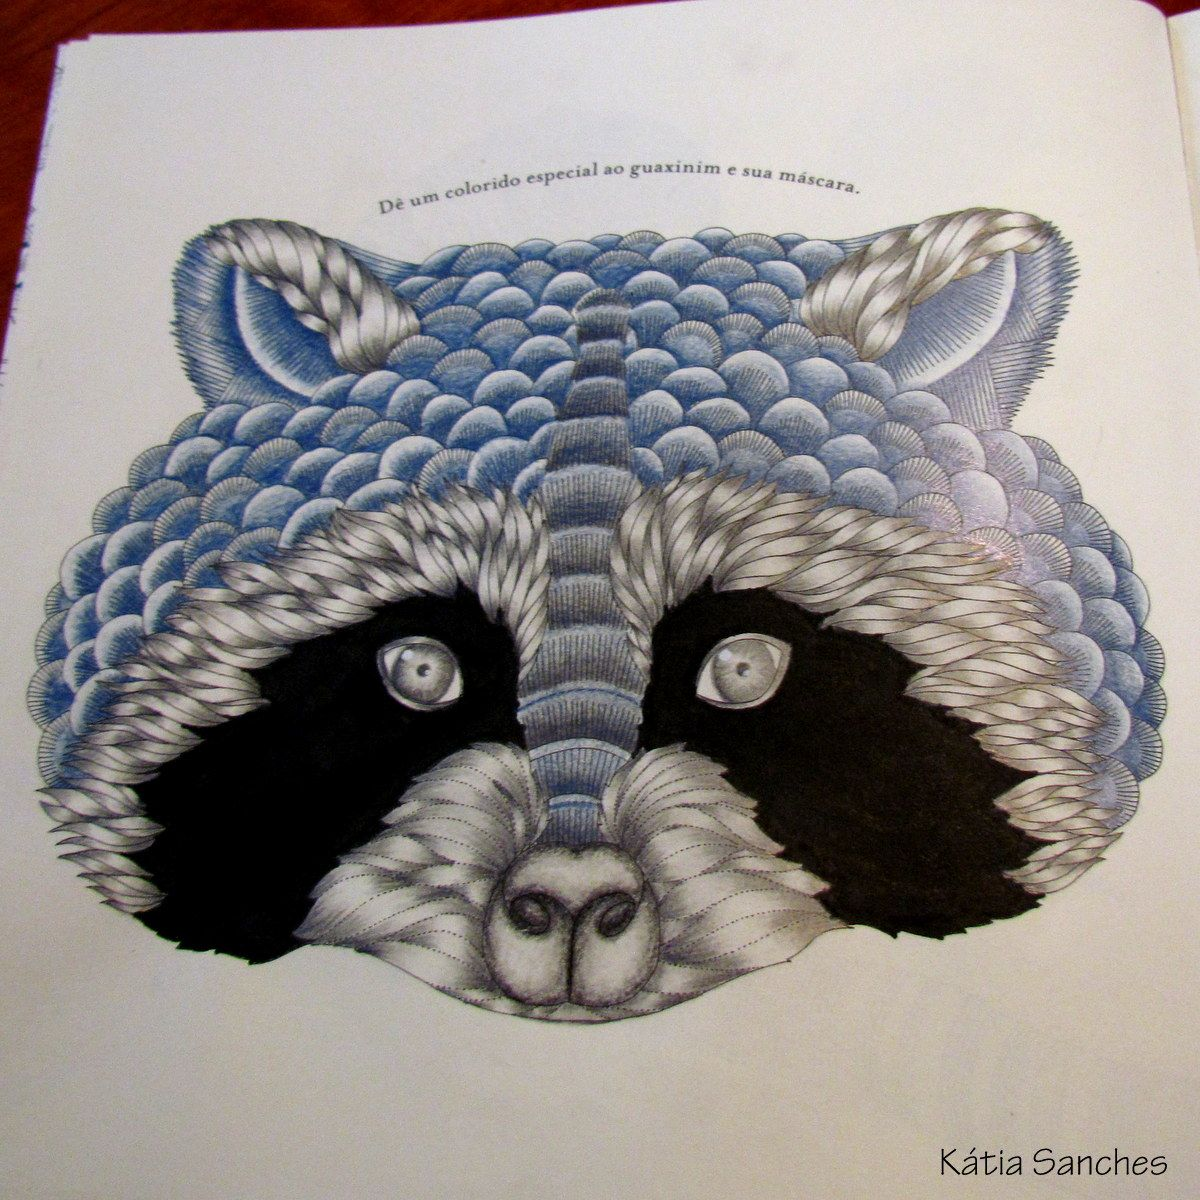 Animal Kingdom Coloring Book Millie Marotta Animal Kingdom Colouring Book Millie Marotta Animal Kingdom Millie Marotta Coloring Book